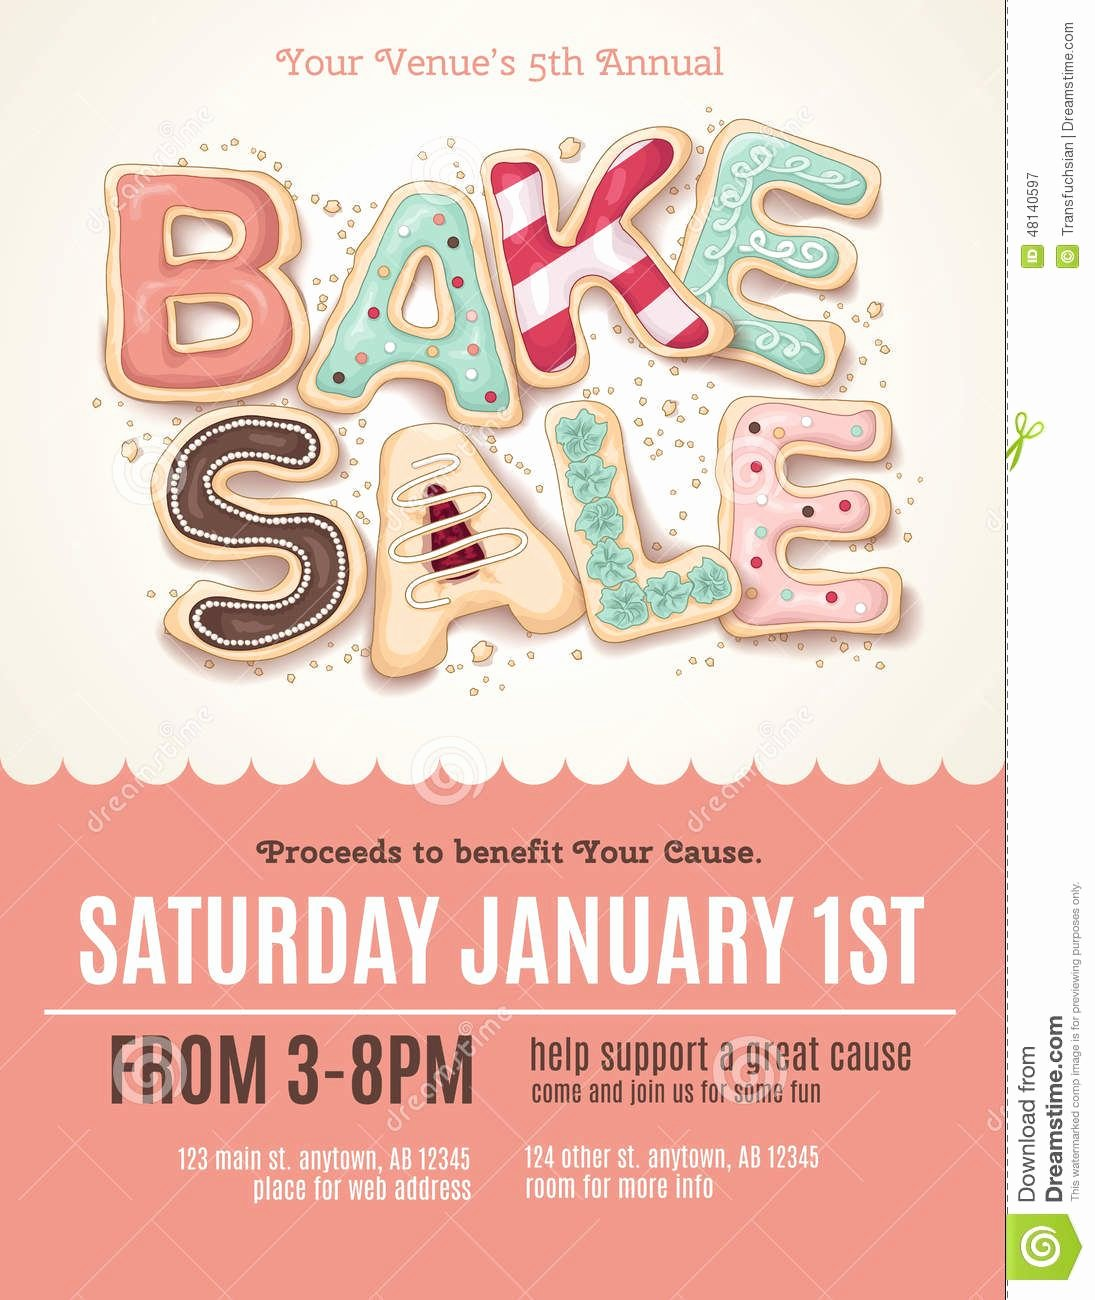 Bake Sale Flyer Ideas Inspirational Fun Cookie Bake Sale Flyer Template Download From Over